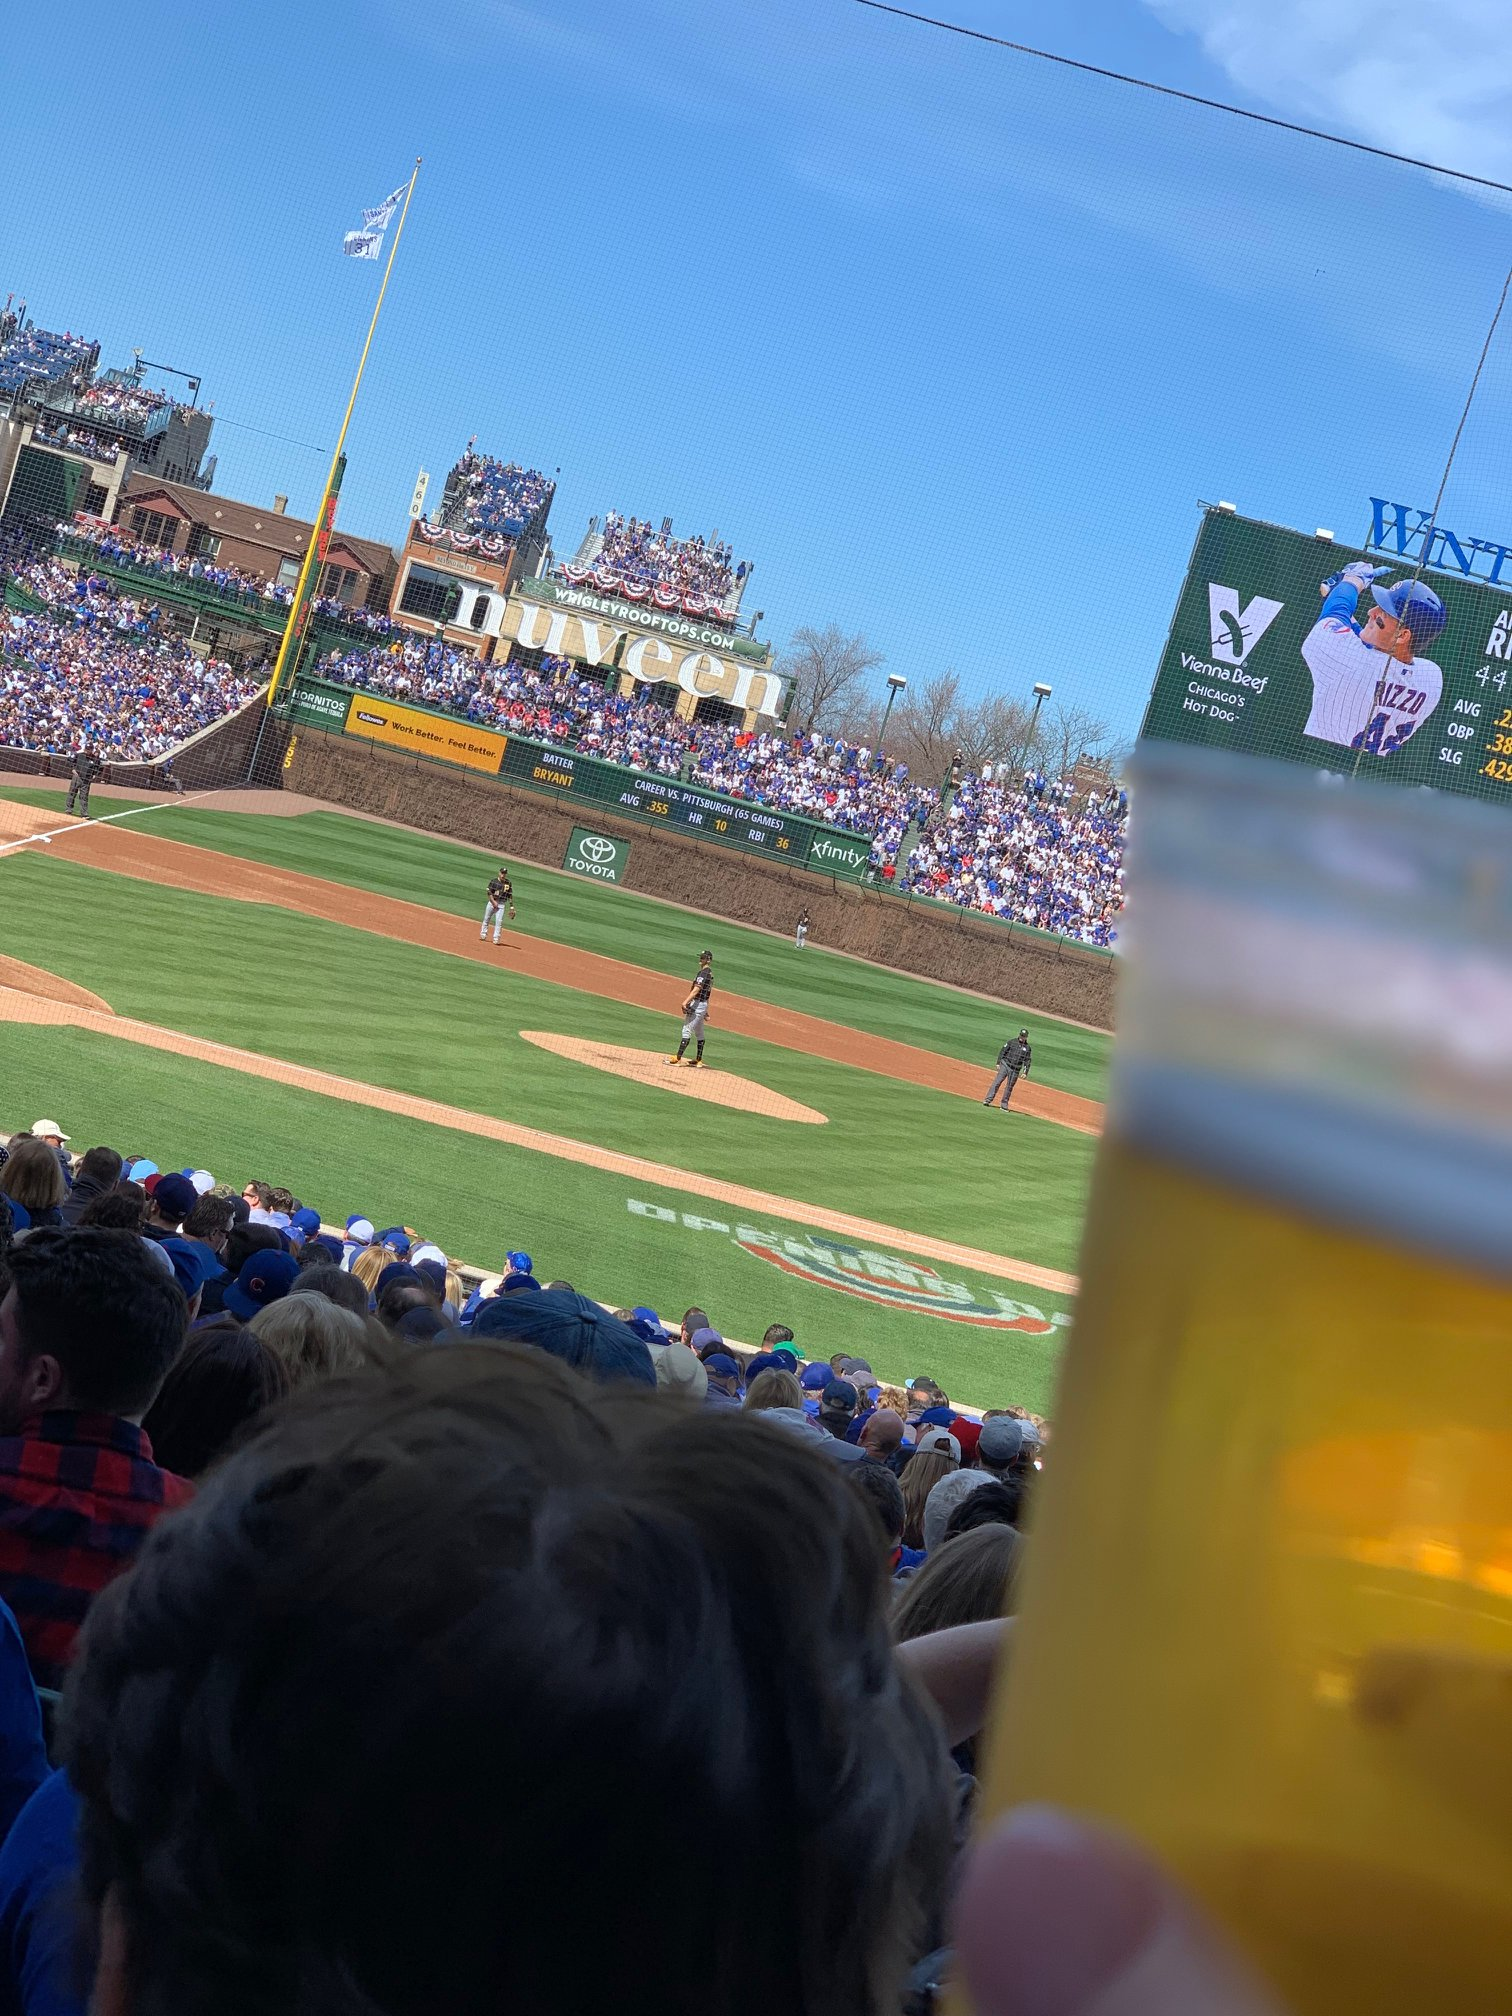 April 8th, 2019 Cubs Home Opener at Wrigley Field